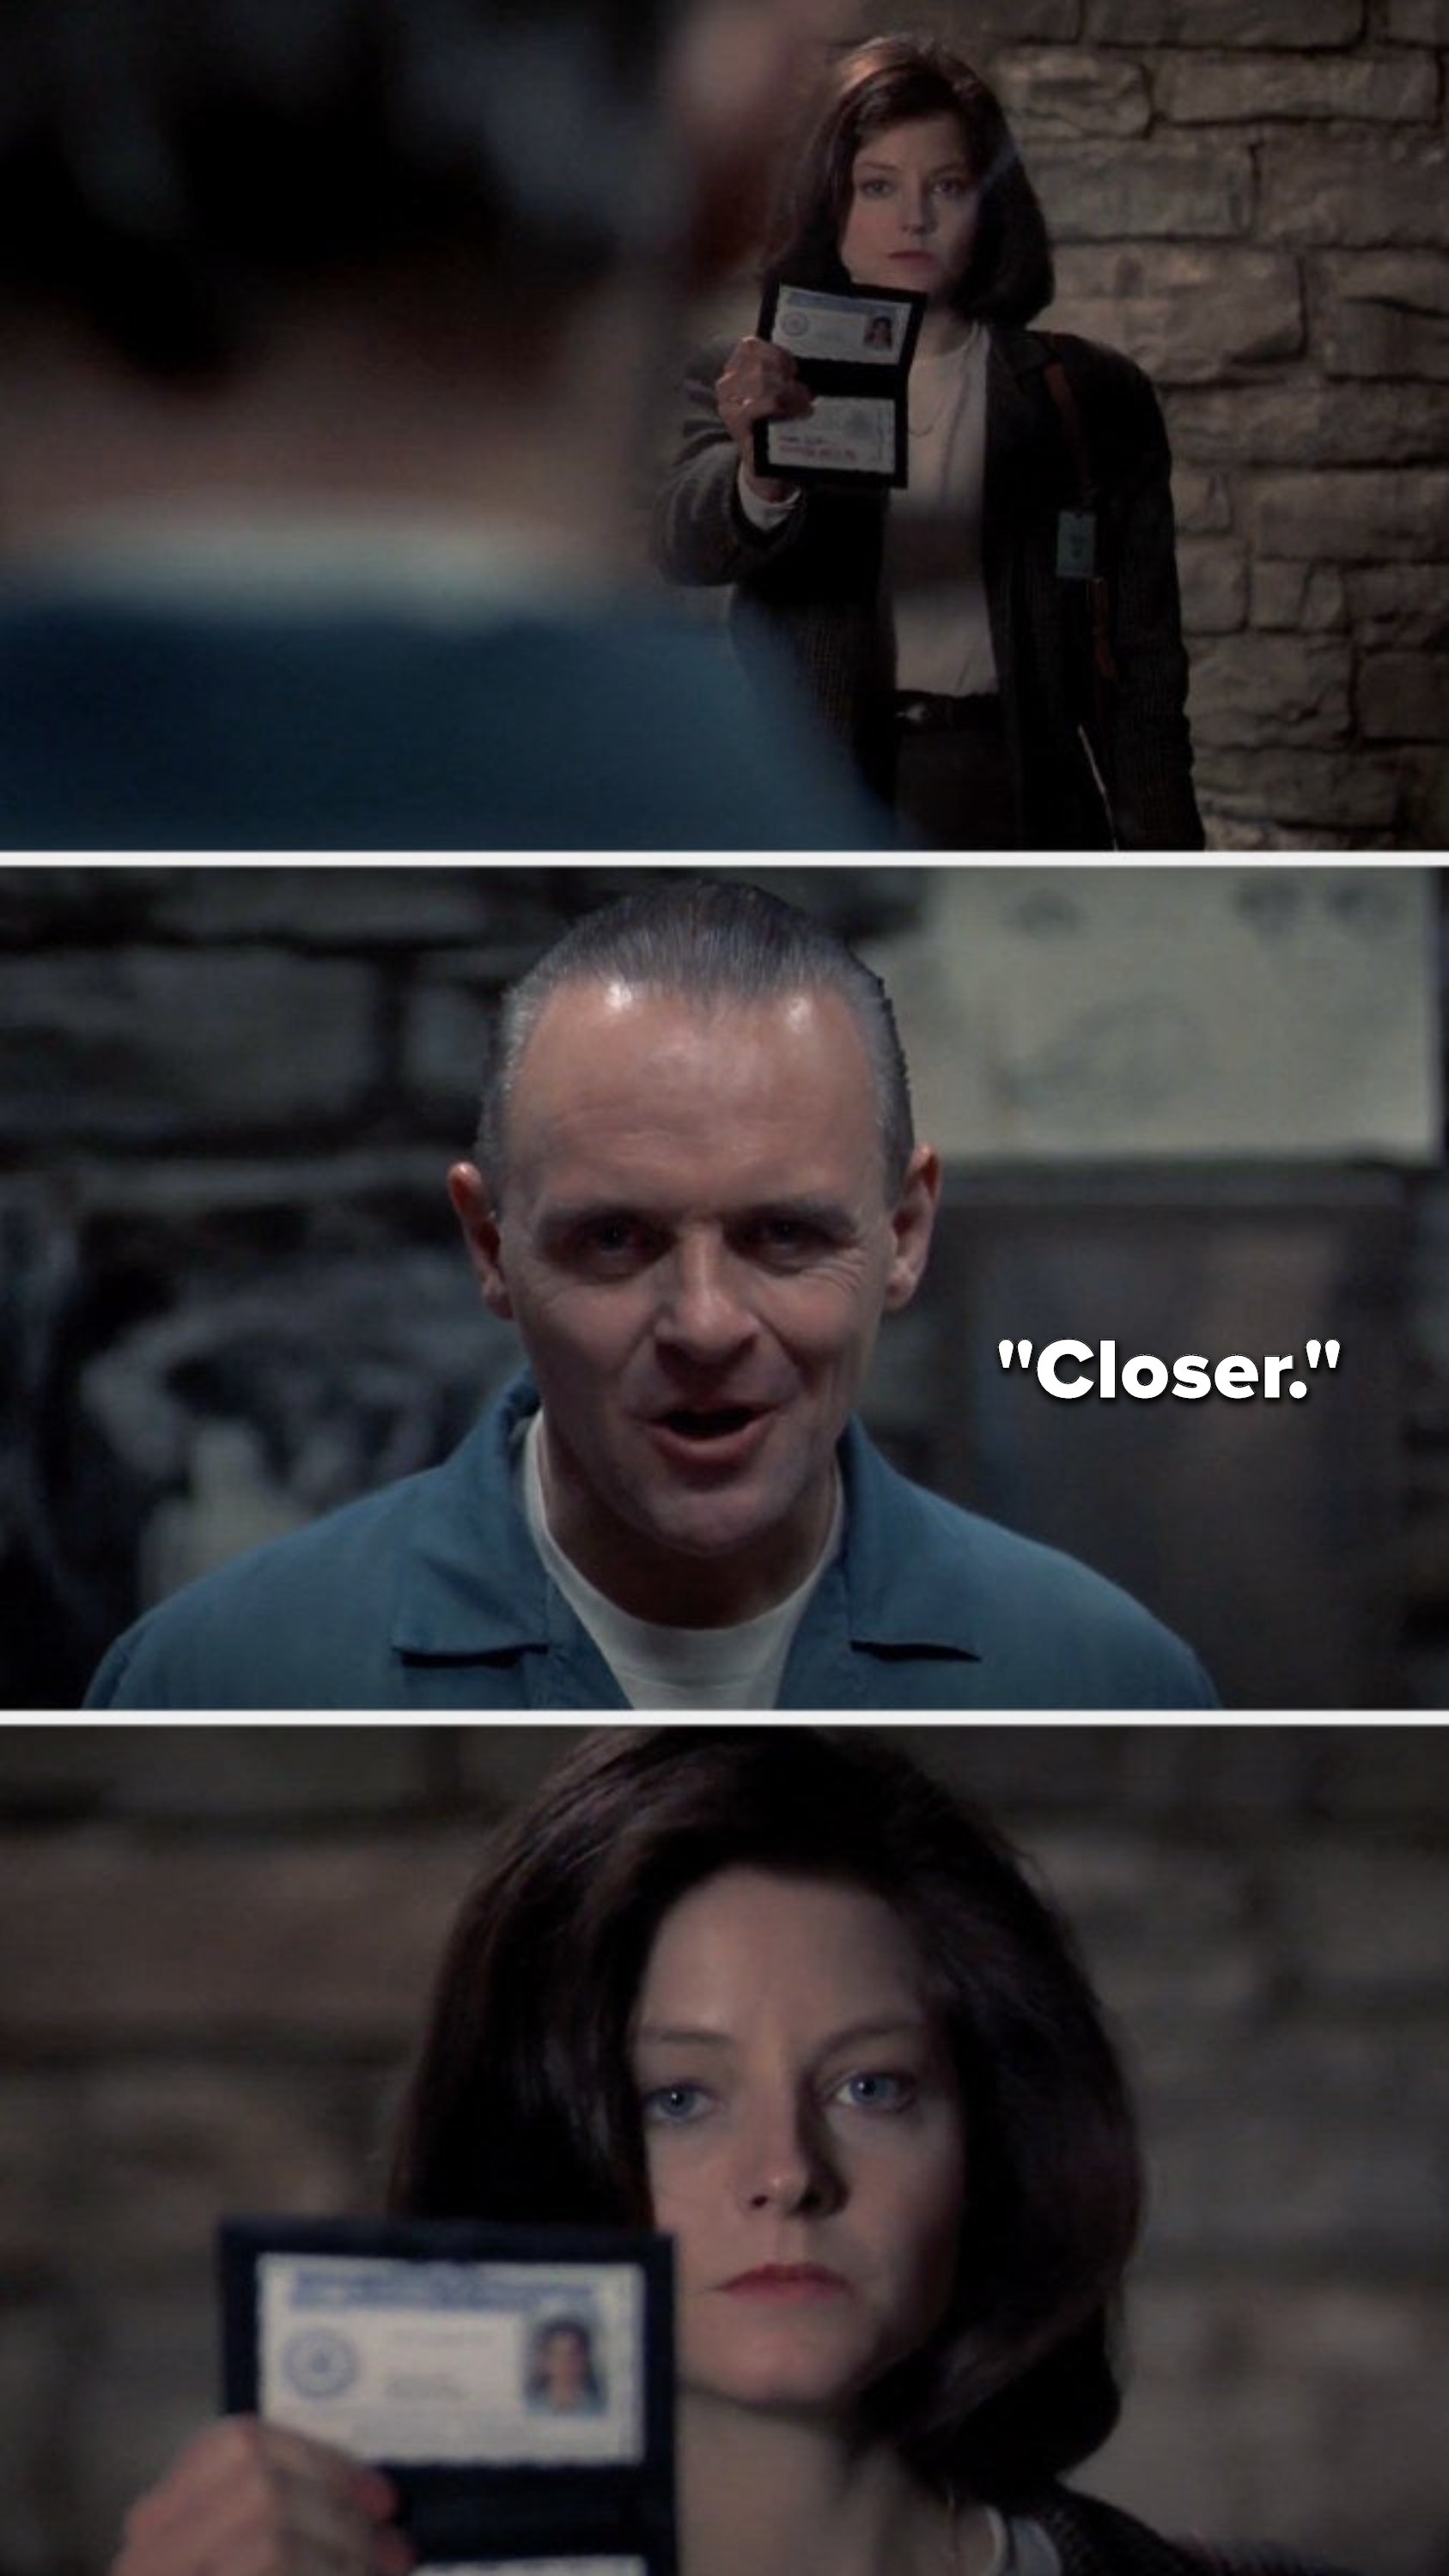 """Clarice holds out her ID for Hannibal to read, Hannibal says, """"Closer,"""" and Clarice gets closer"""